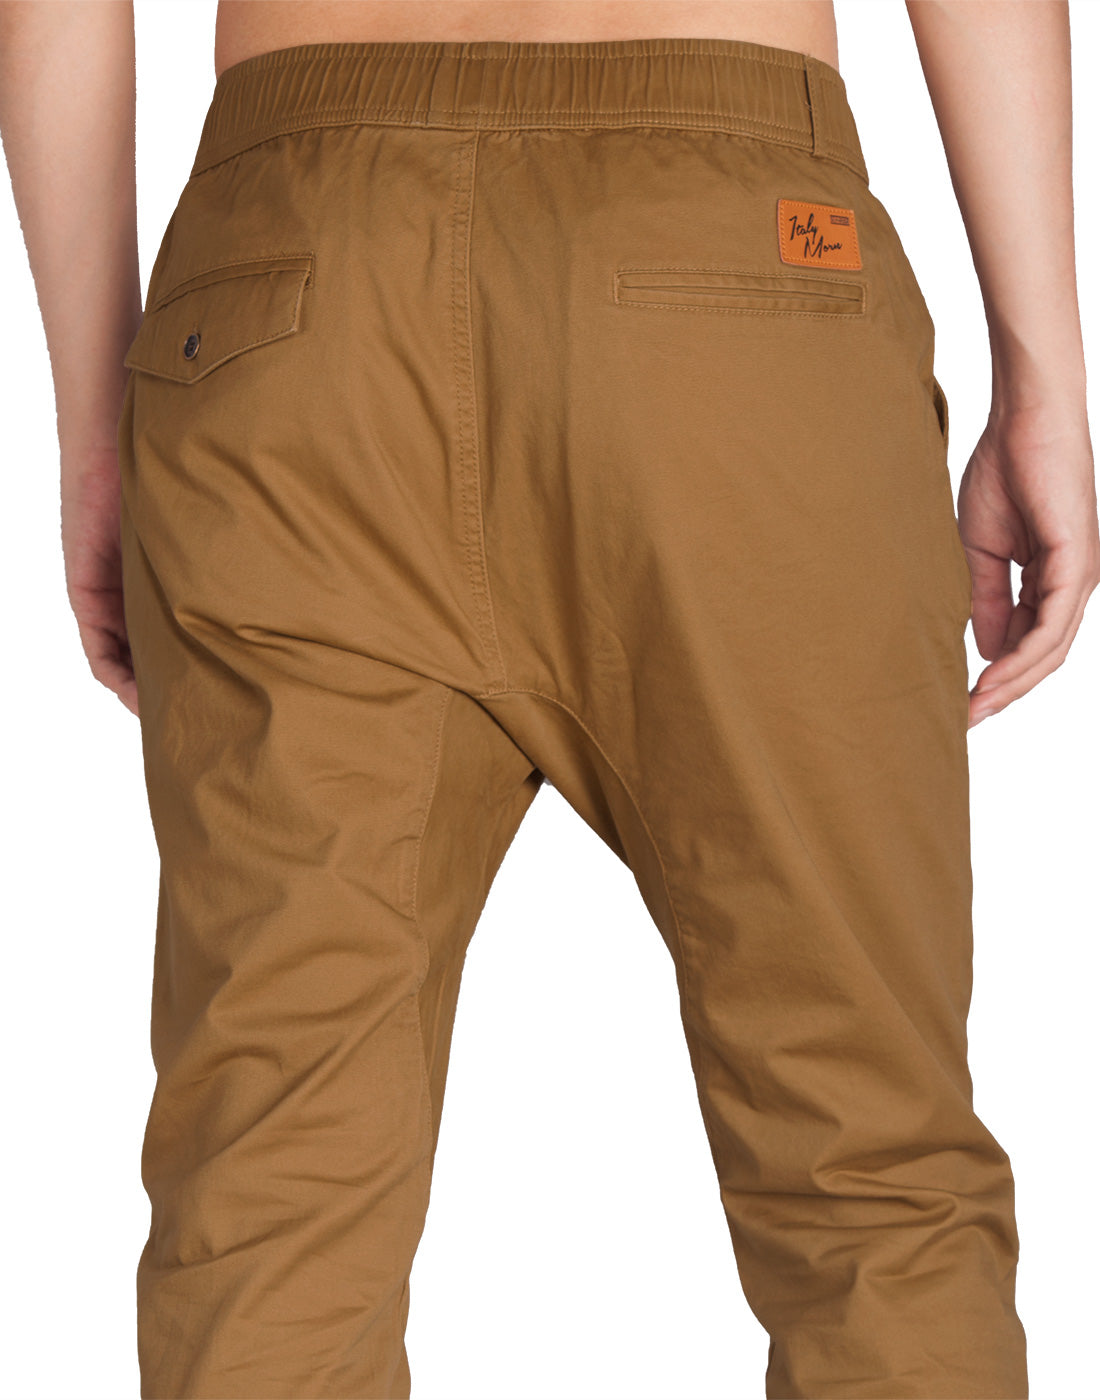 Man Drop Crotch Jogger Pants Brown - italymorn